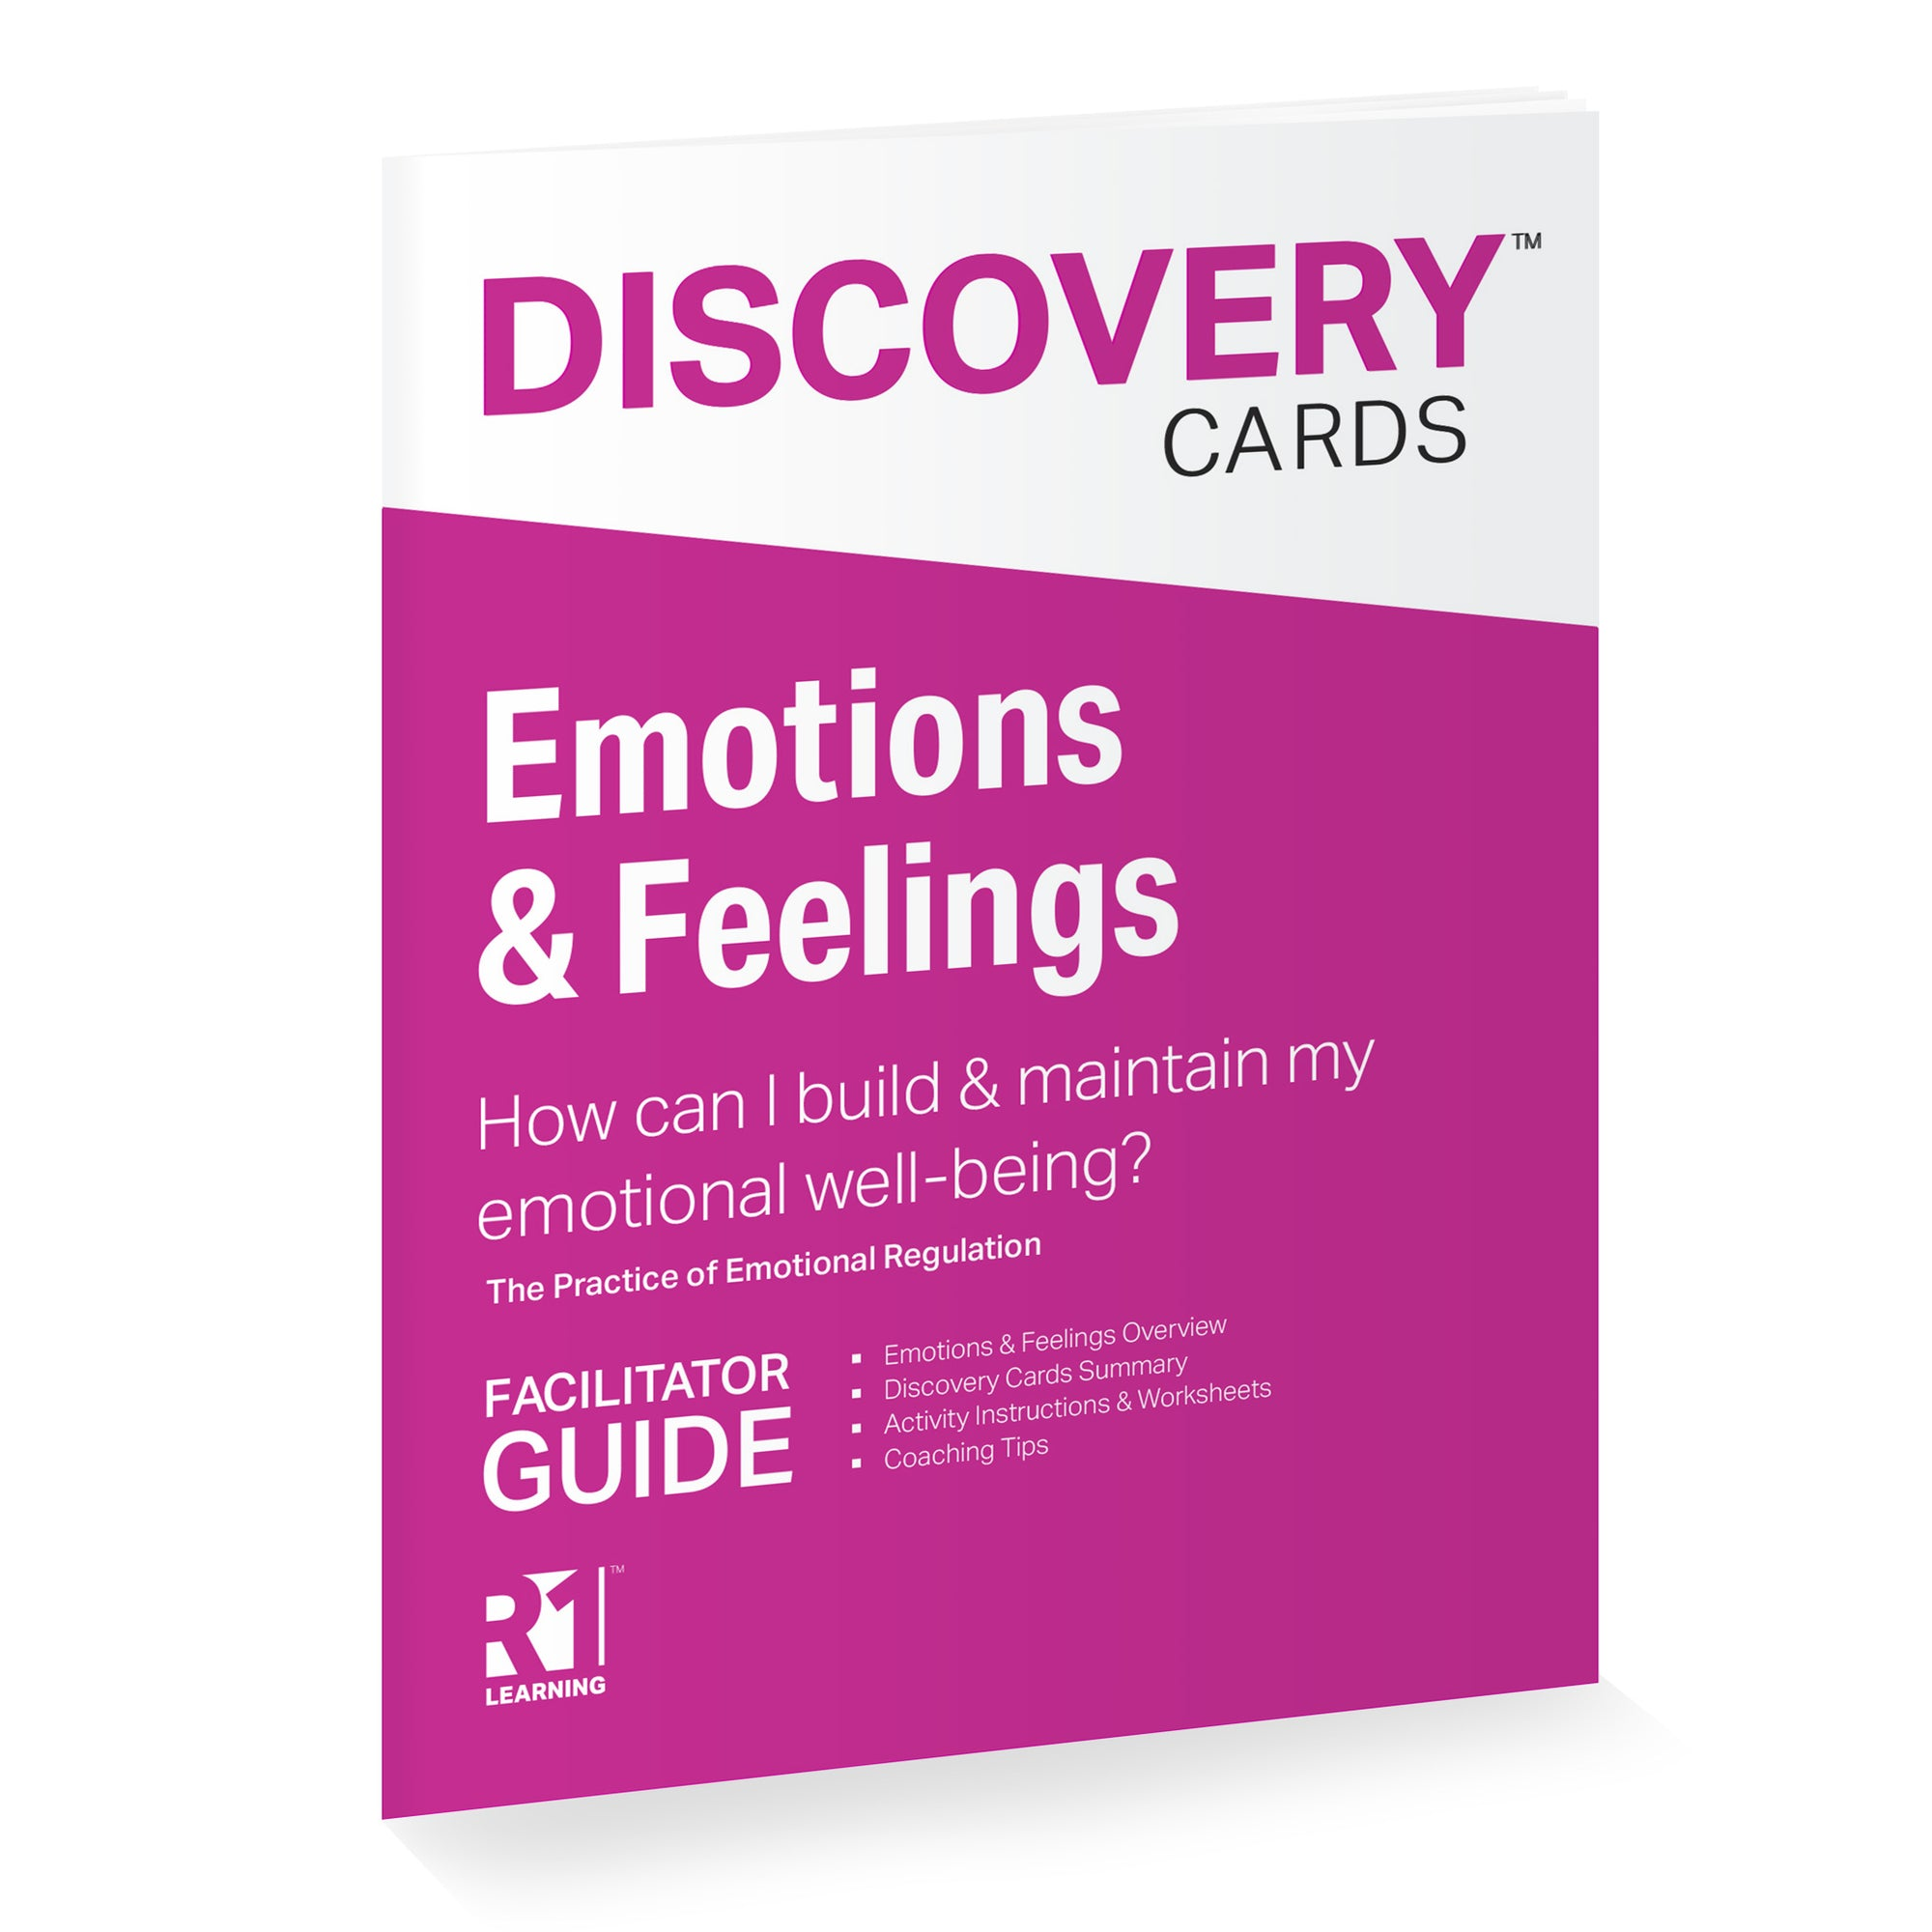 September 18, 1:00–2:30 pm US ET (90 minutes) — Emotions & Feelings Virtual Training